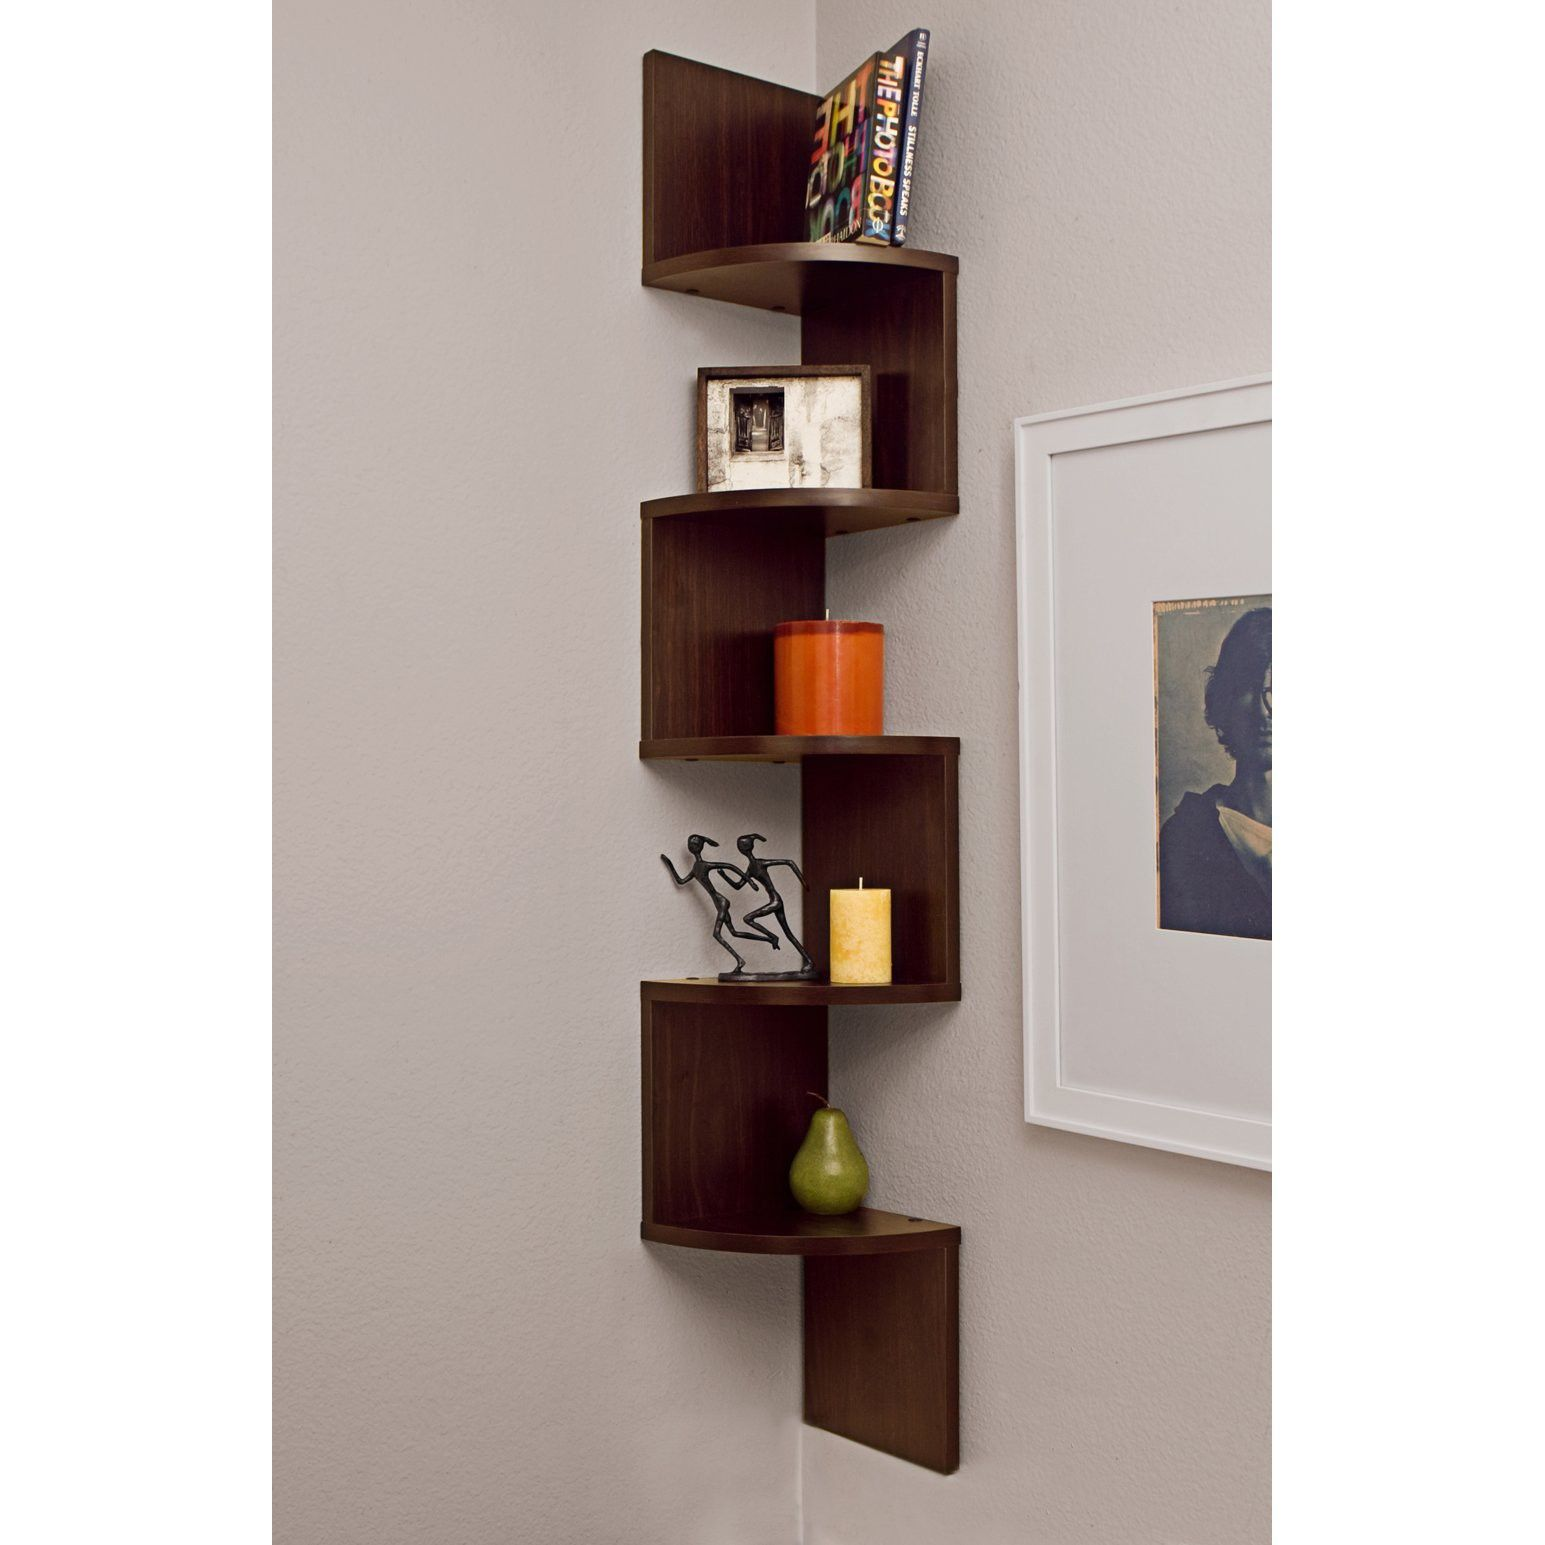 Floating Shelves Target Danya Blarge Corner Shelf  Large Corner Shelf Corner Shelf And